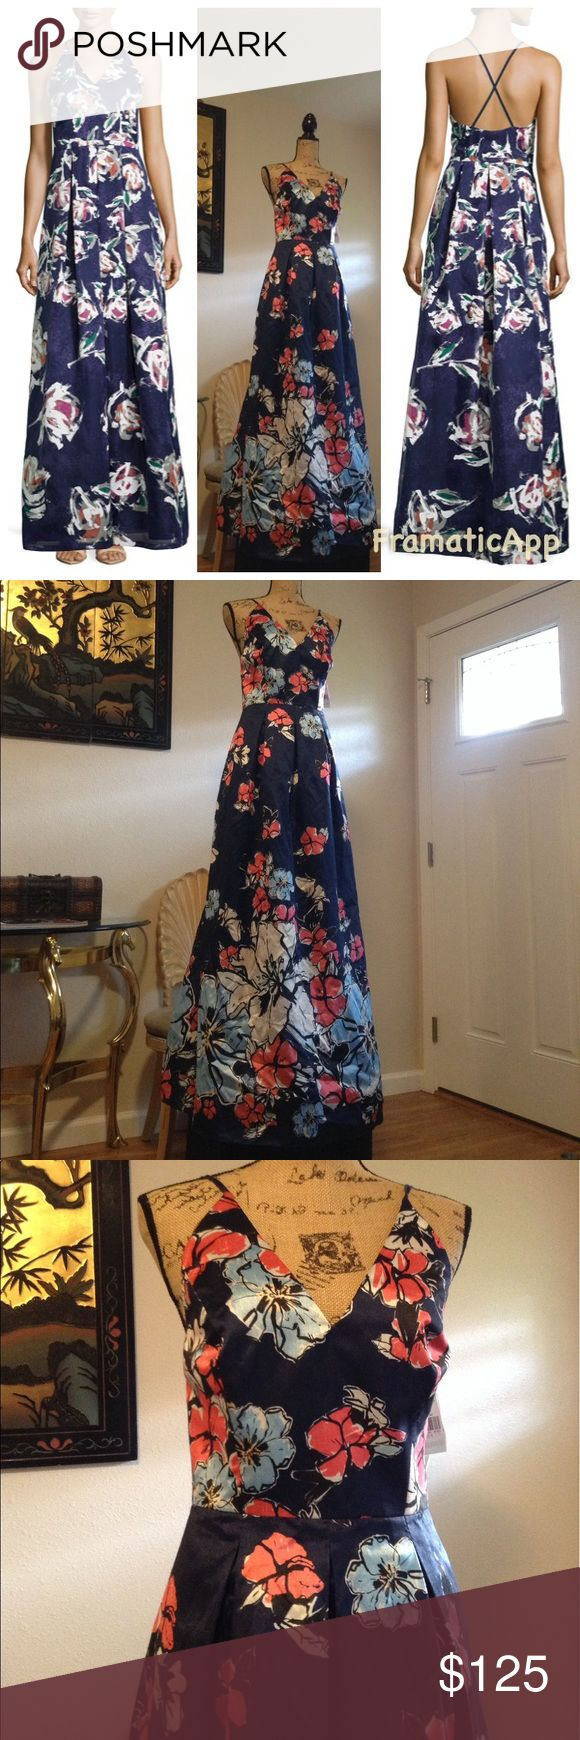 "Kay Unger Phoebe Floral Gown Sz8 Kay Unger Phoebe Floral Gown Sz8 . Has side zip hook closure adjustable straps , is fully lined & measures approx 57"" long waist approx 30"".😆 Kay Unger Dresses Maxi"